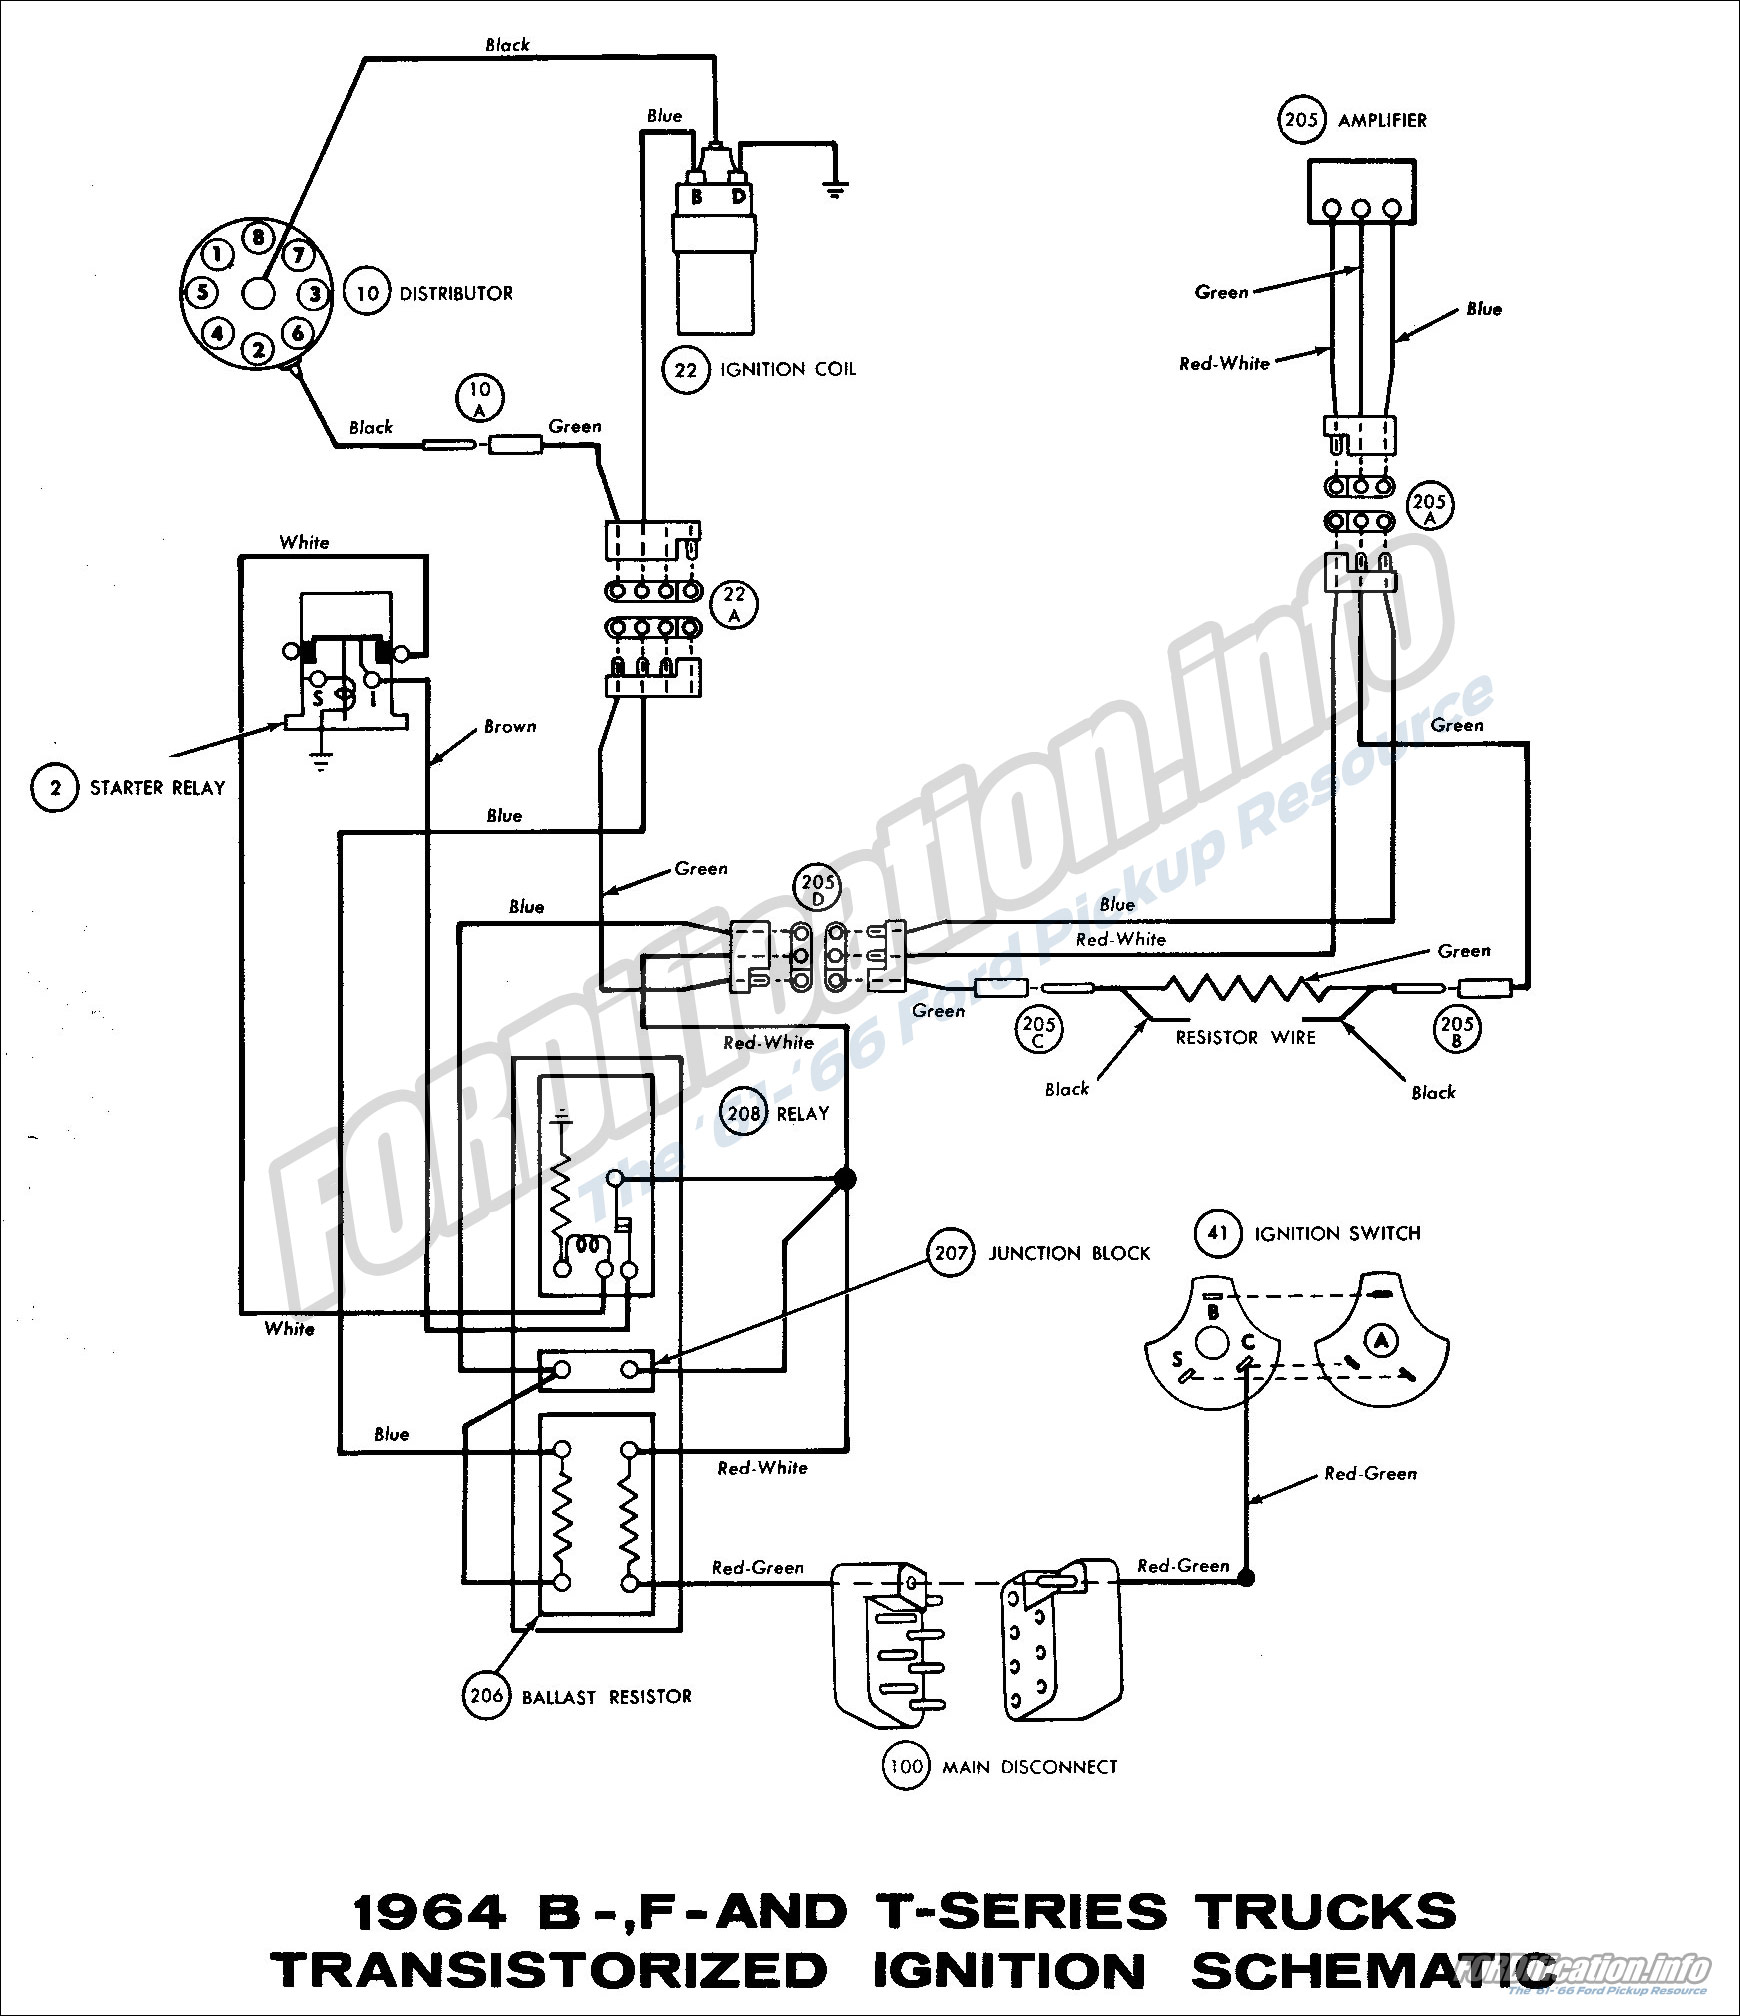 1964 Ford Truck Wiring Diagrams The 61 66 Fuse Diagram B F And T Series Trucks Transistorized Ignition Schematic